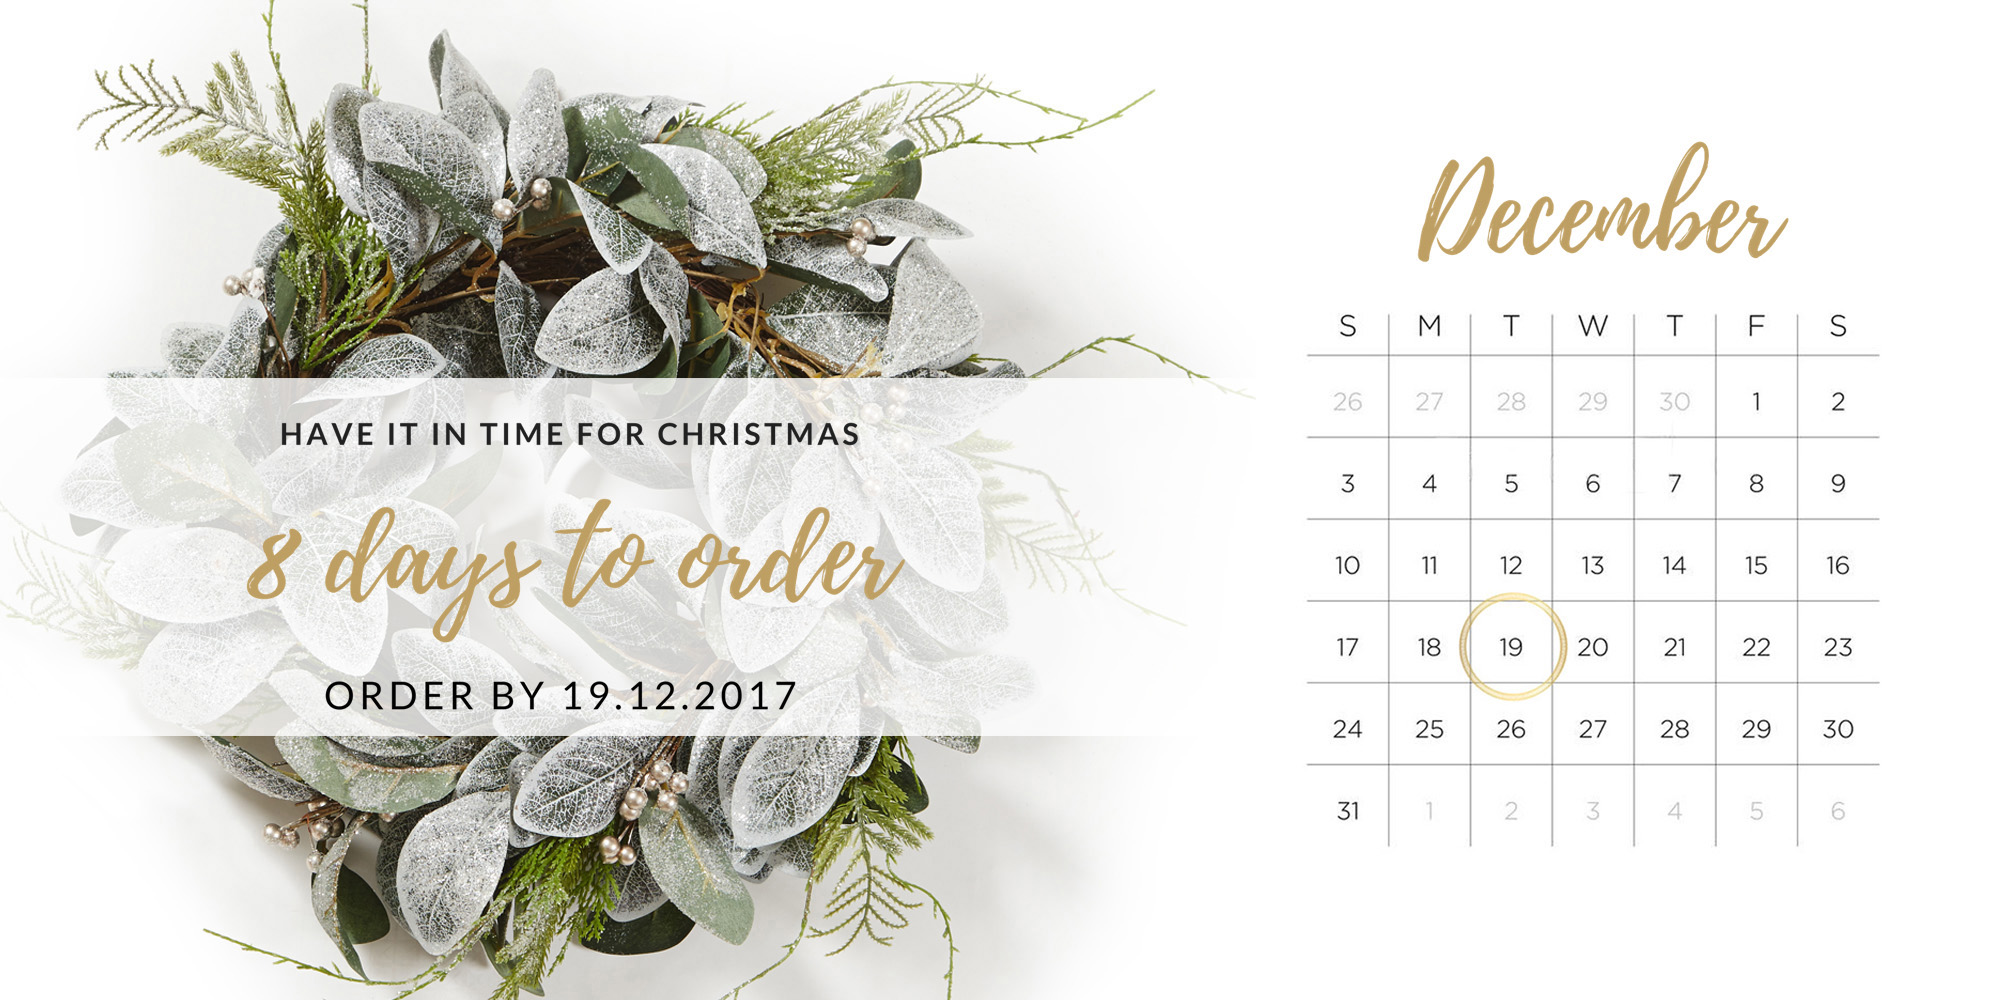 Last date to order for Christmas - 19.12.2017